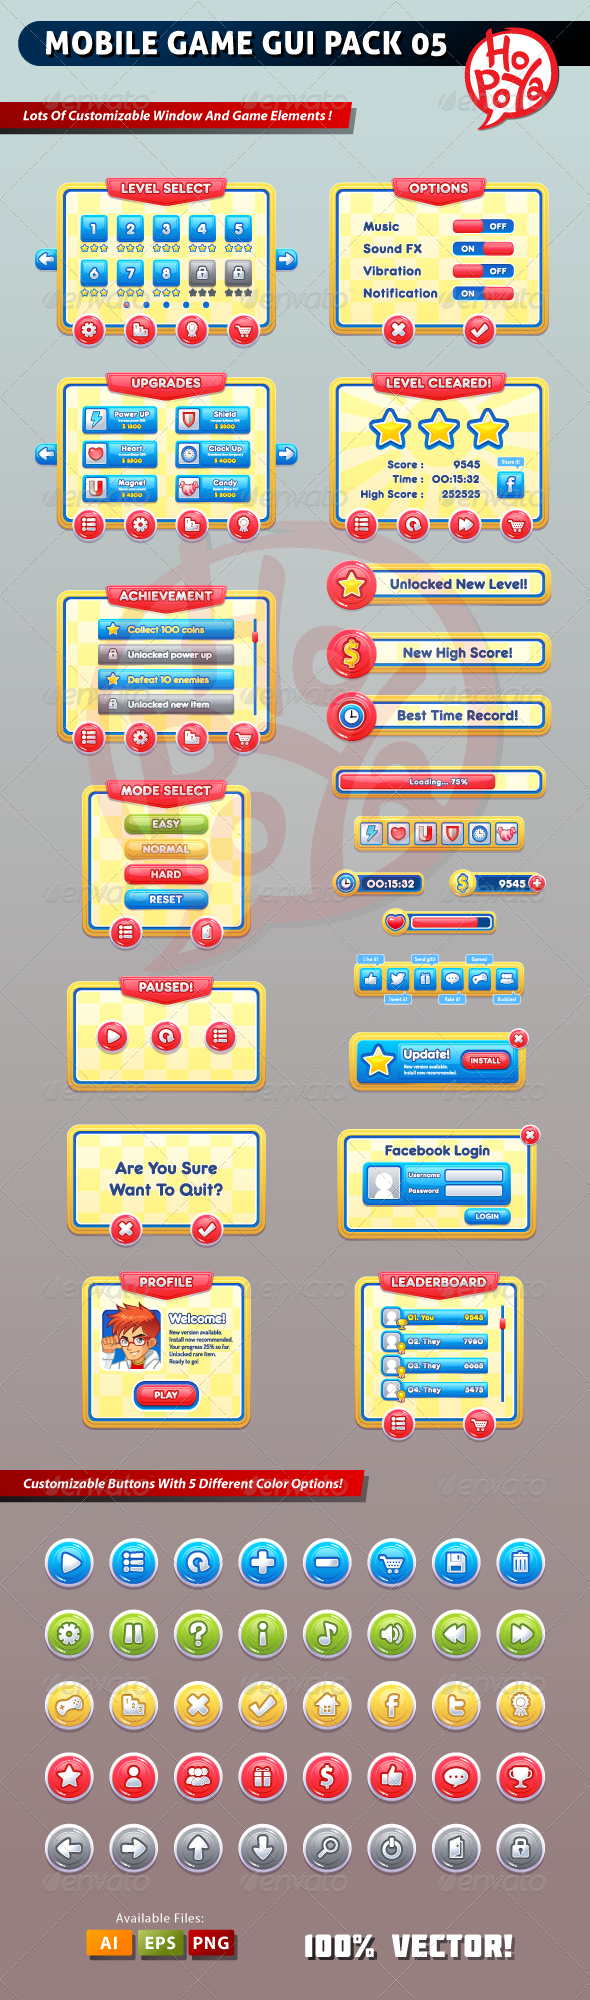 Mobile Game GUI Pack 05 - Web Elements Vectors